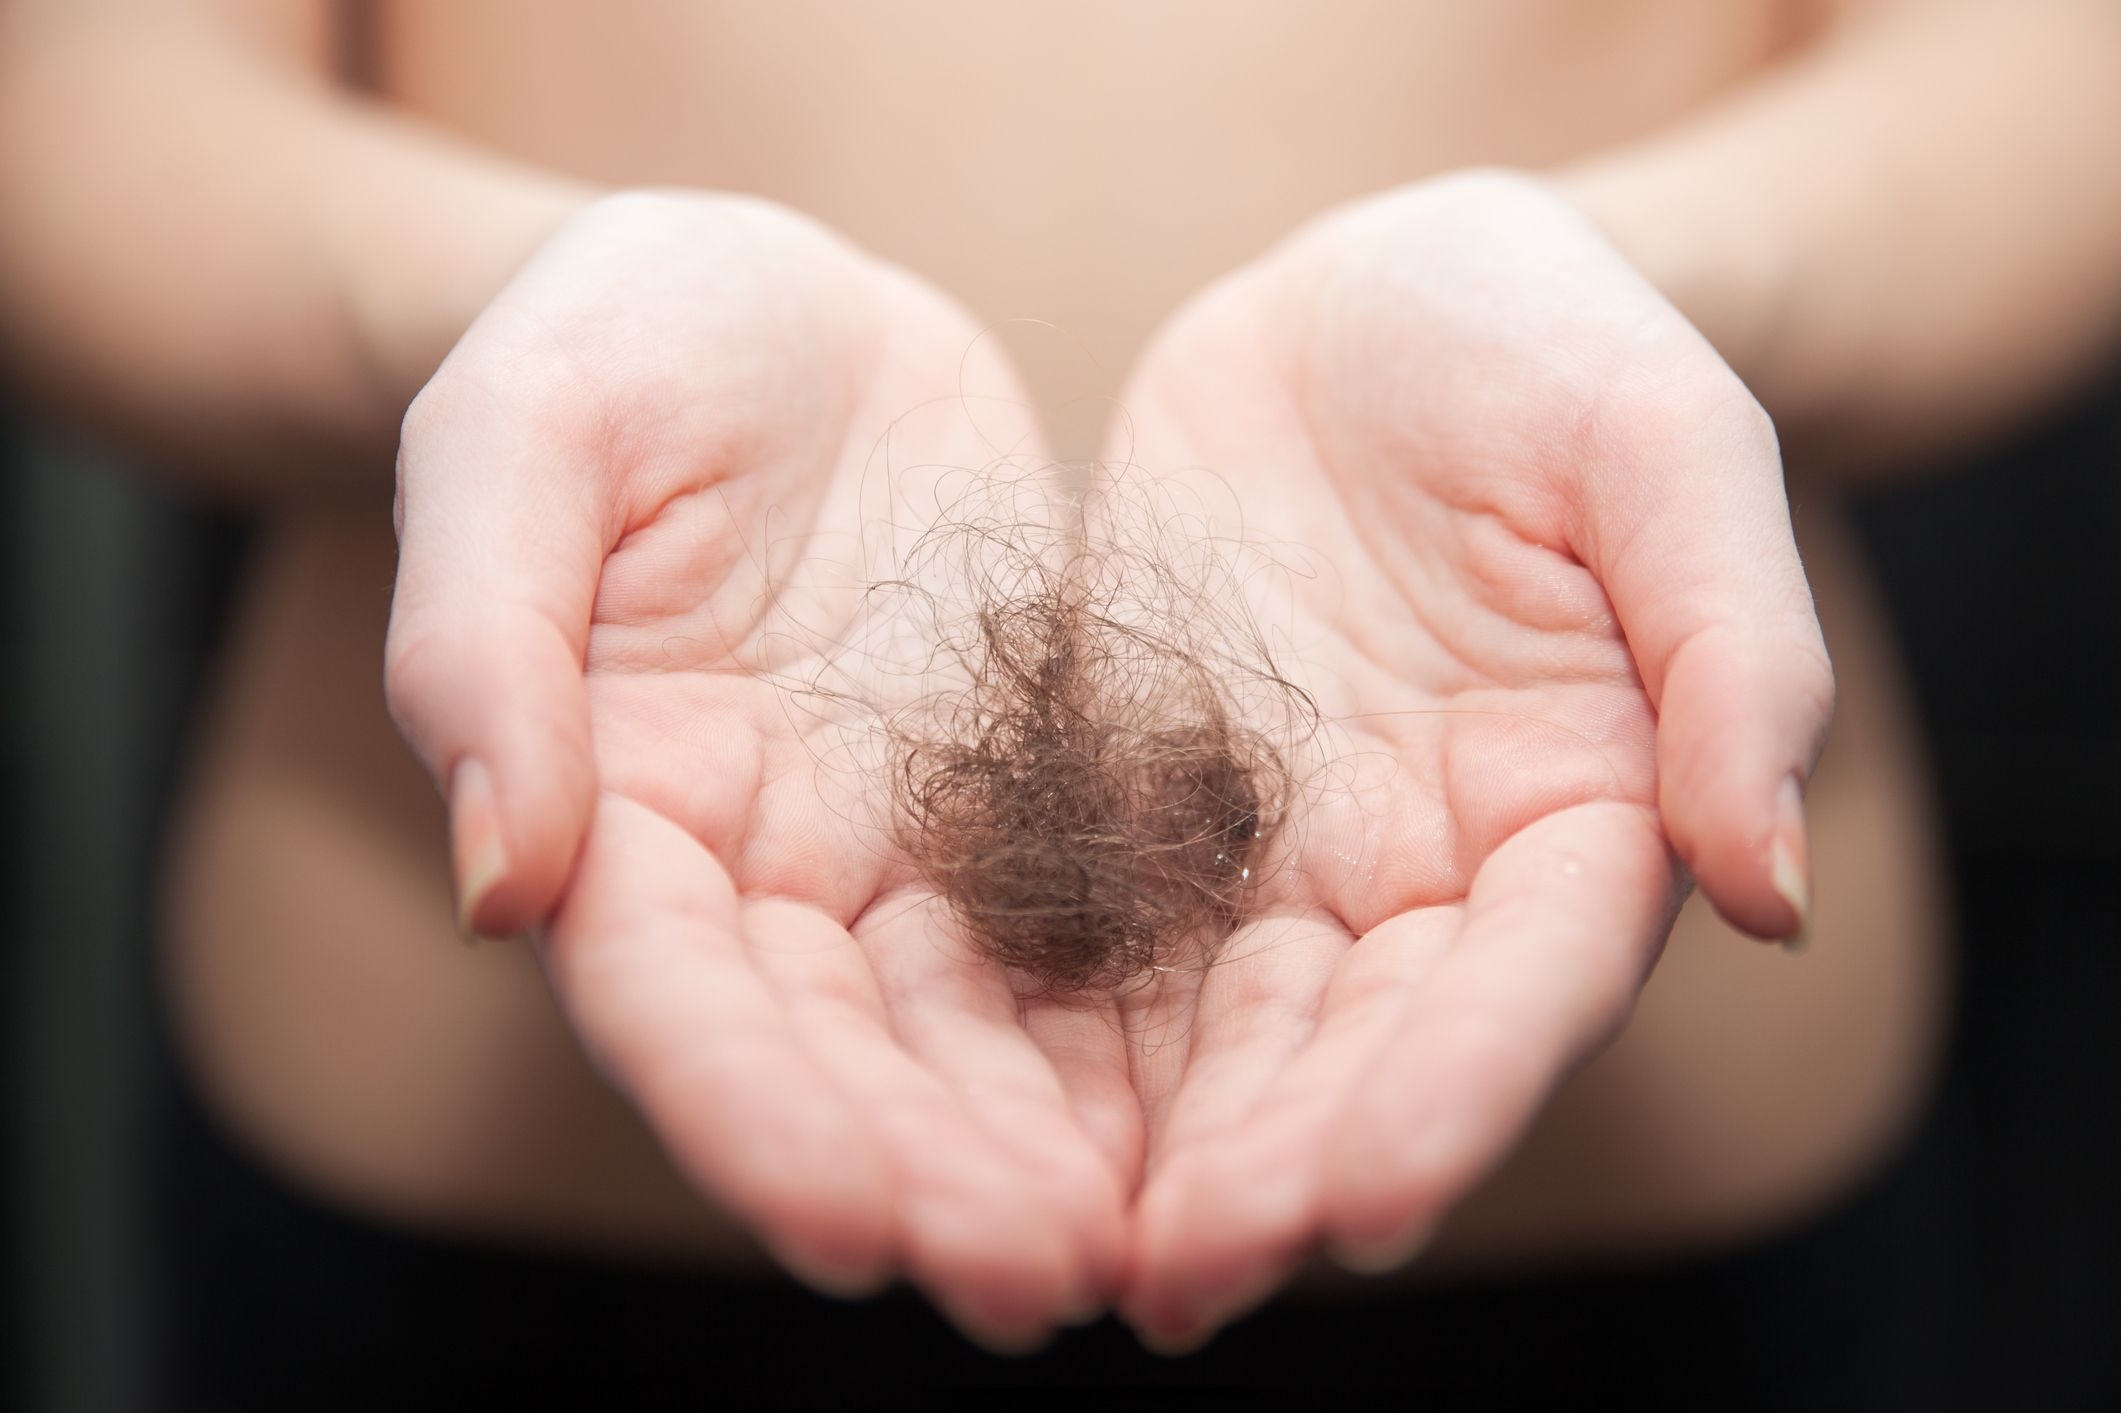 Holding a tuft of hair that's been shed